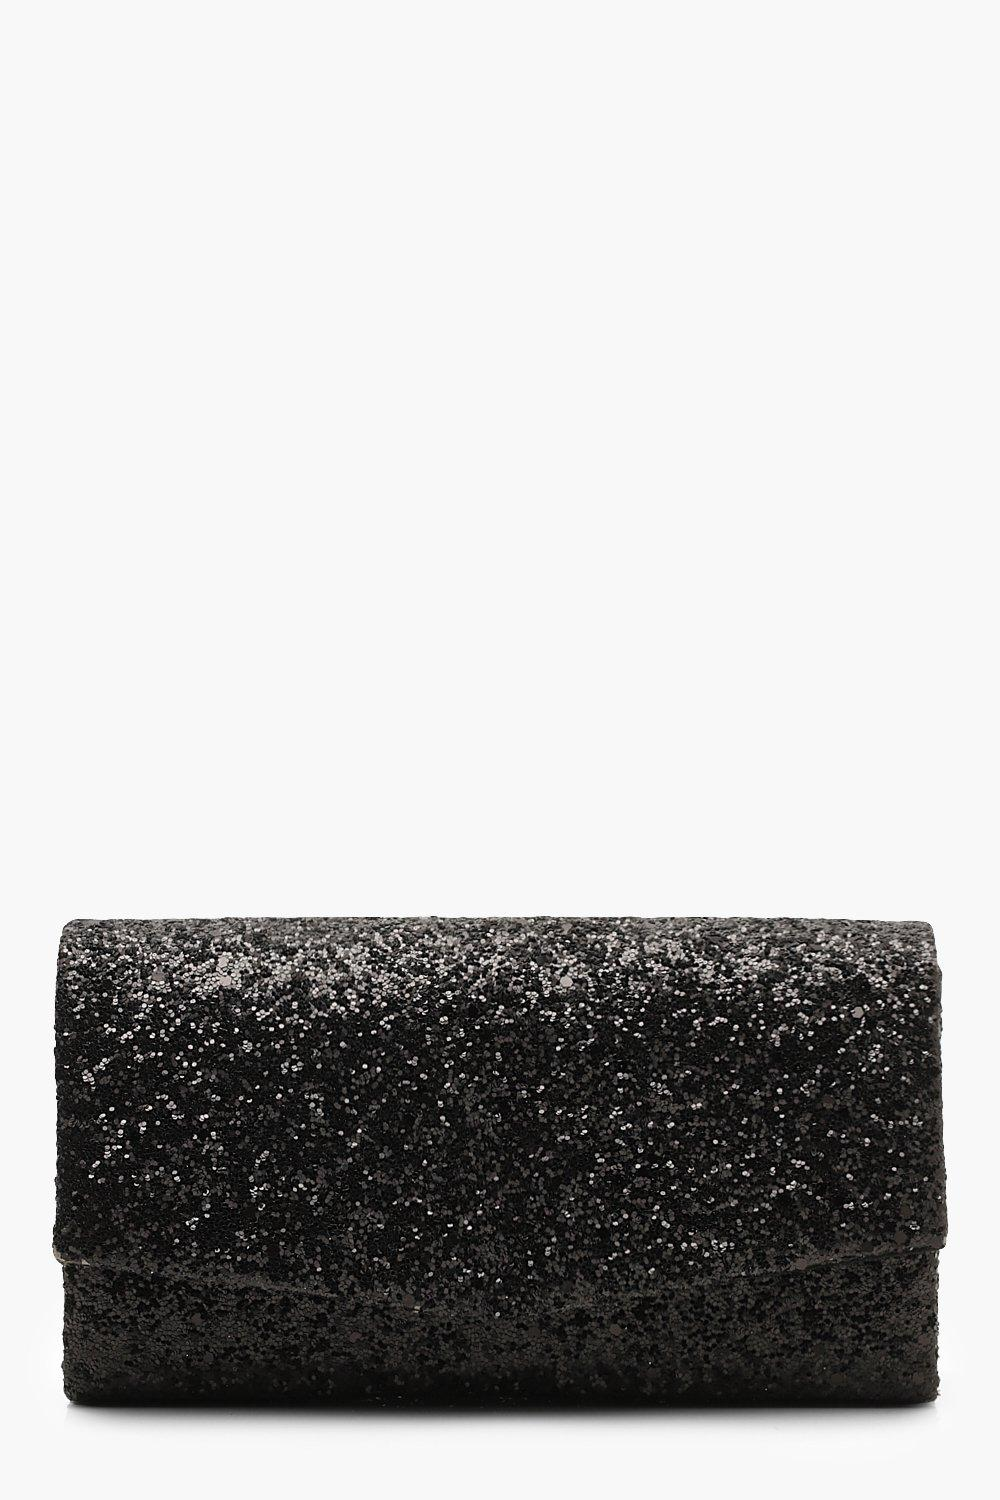 boohoo Womens Structured Glitter Envelope Clutch Bag With Chain - Black - One Size, Black